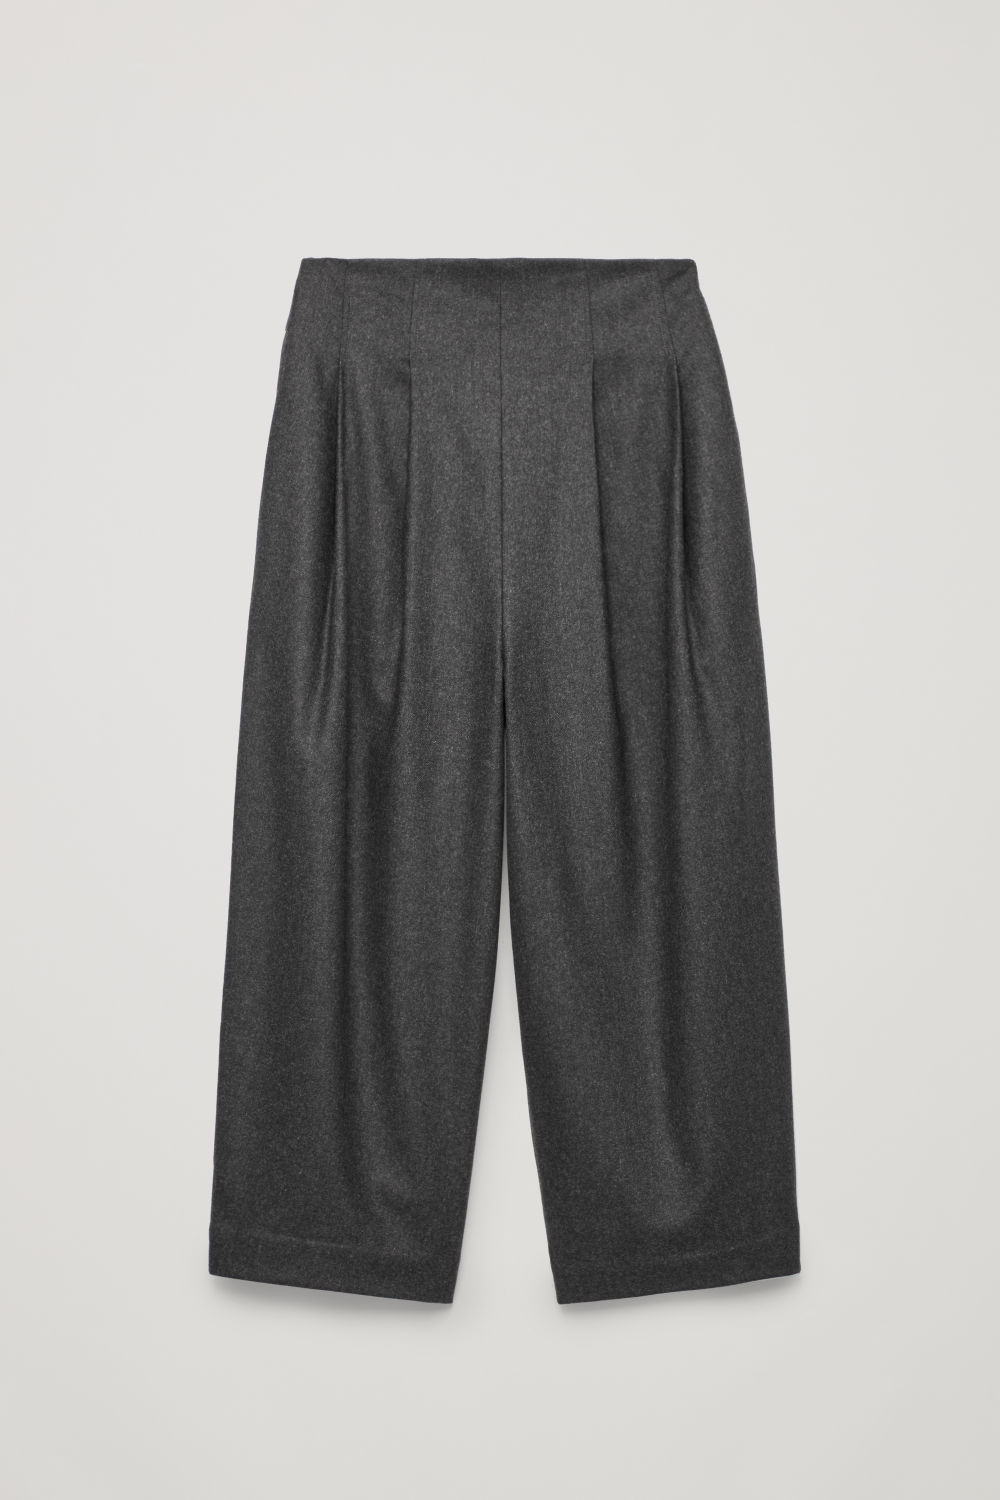 CROP PLEATED WOOL TROUSERS